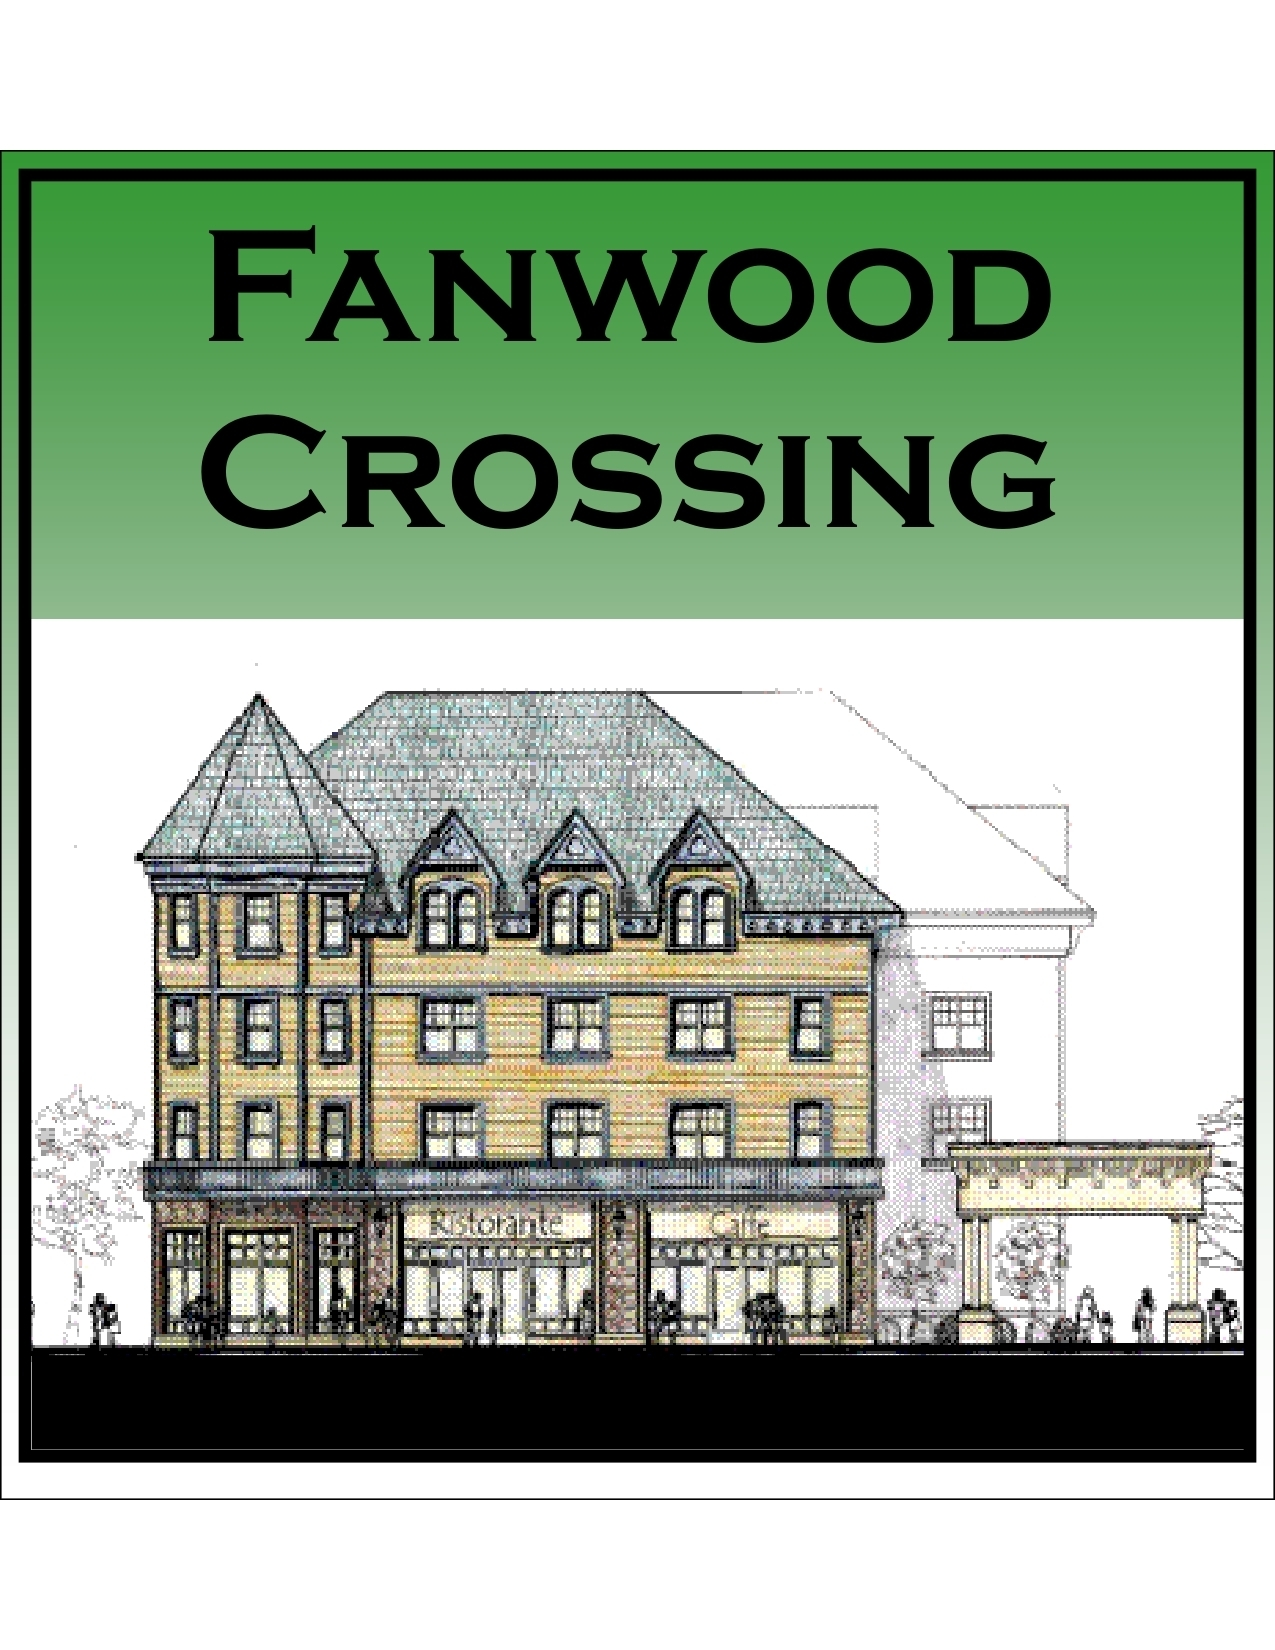 c23a3c0ffcd4290e8292_Fanwood_crossing_drawing.jpg